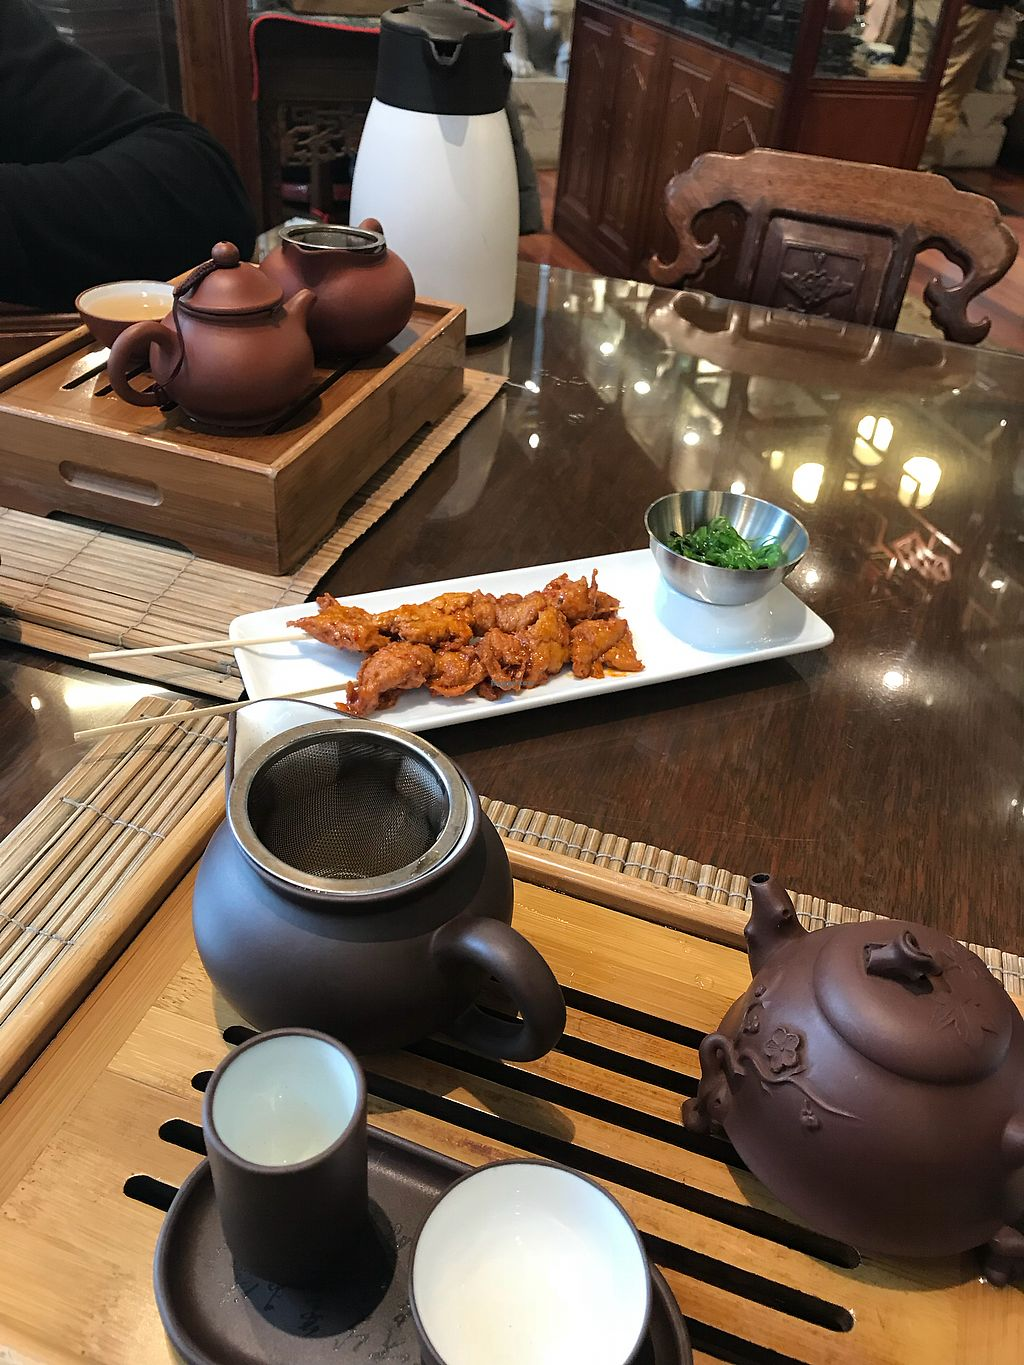 """Photo of Ming Tao Xuan  by <a href=""""/members/profile/MyGreenTongue"""">MyGreenTongue</a> <br/>Ginseng oolong tea and  'chicken' skewers  <br/> November 24, 2017  - <a href='/contact/abuse/image/11805/328825'>Report</a>"""